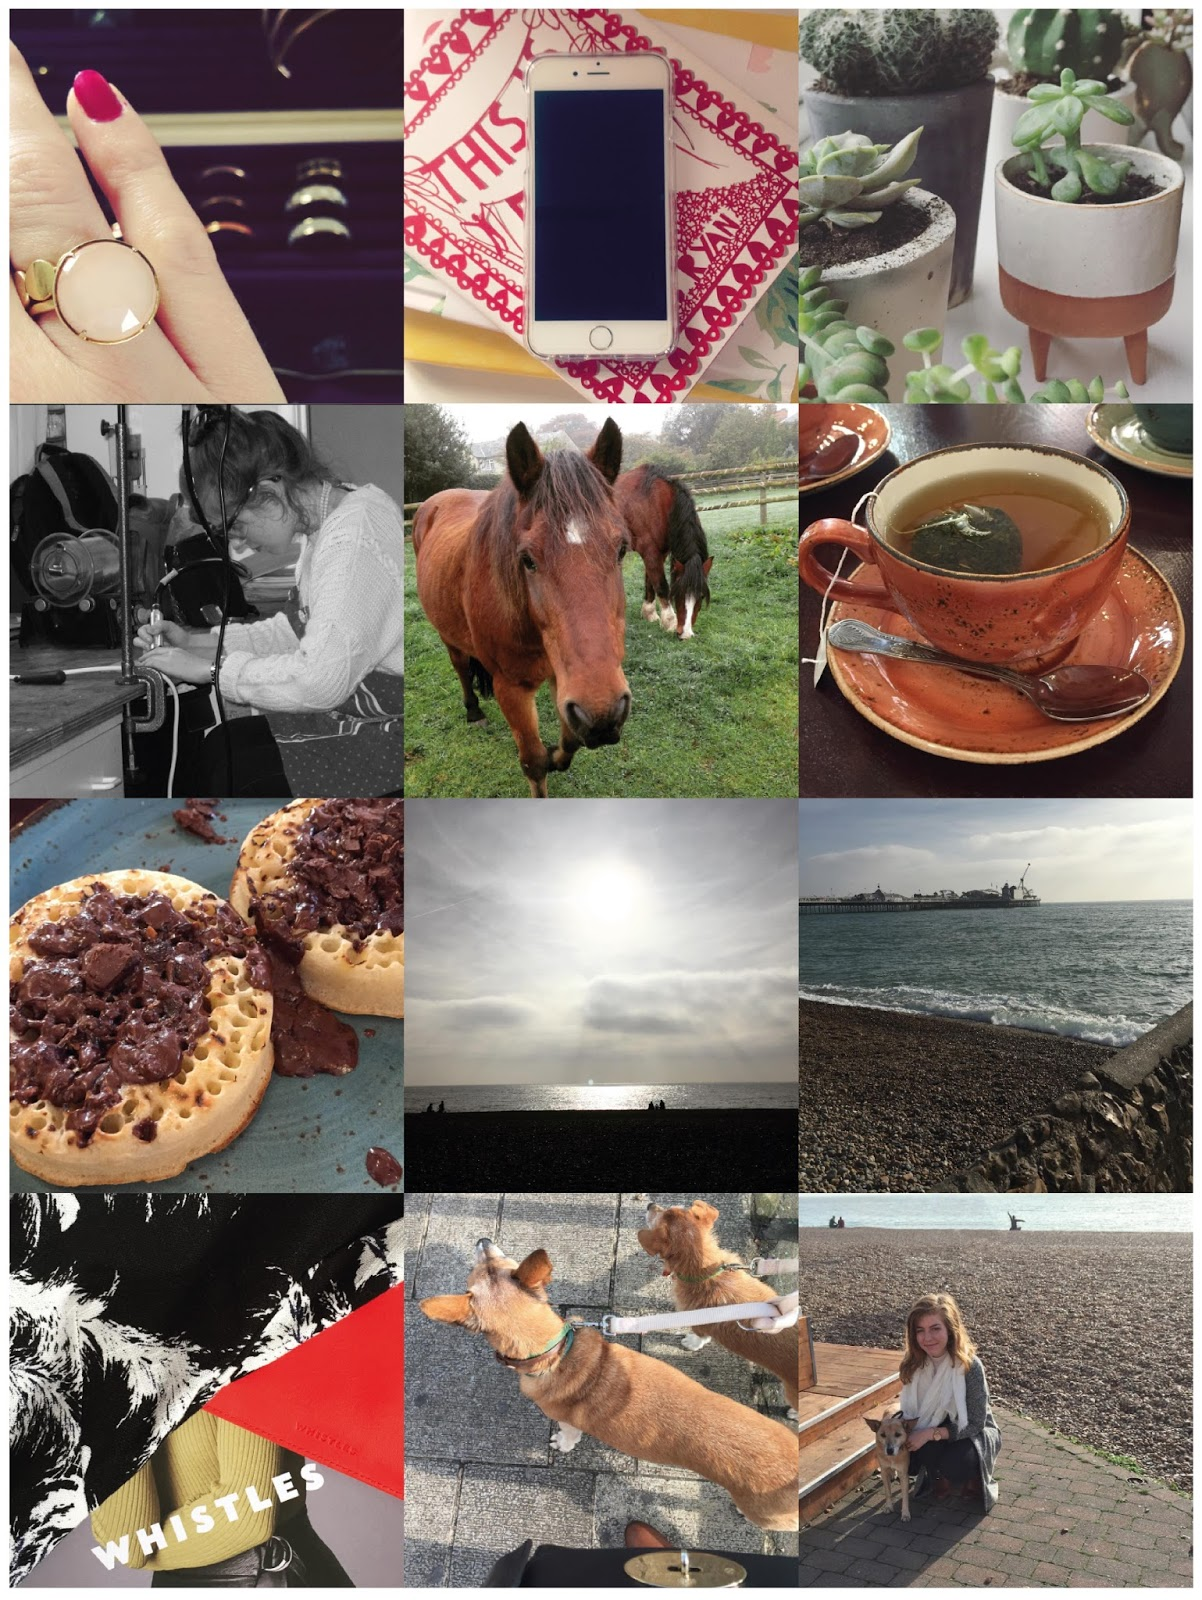 Jewellery, iPhone, Silver, Pony, Horse, Brighton, Reigate, Tea, Food, Update, Shopping, Whistles, Beach, Sea,